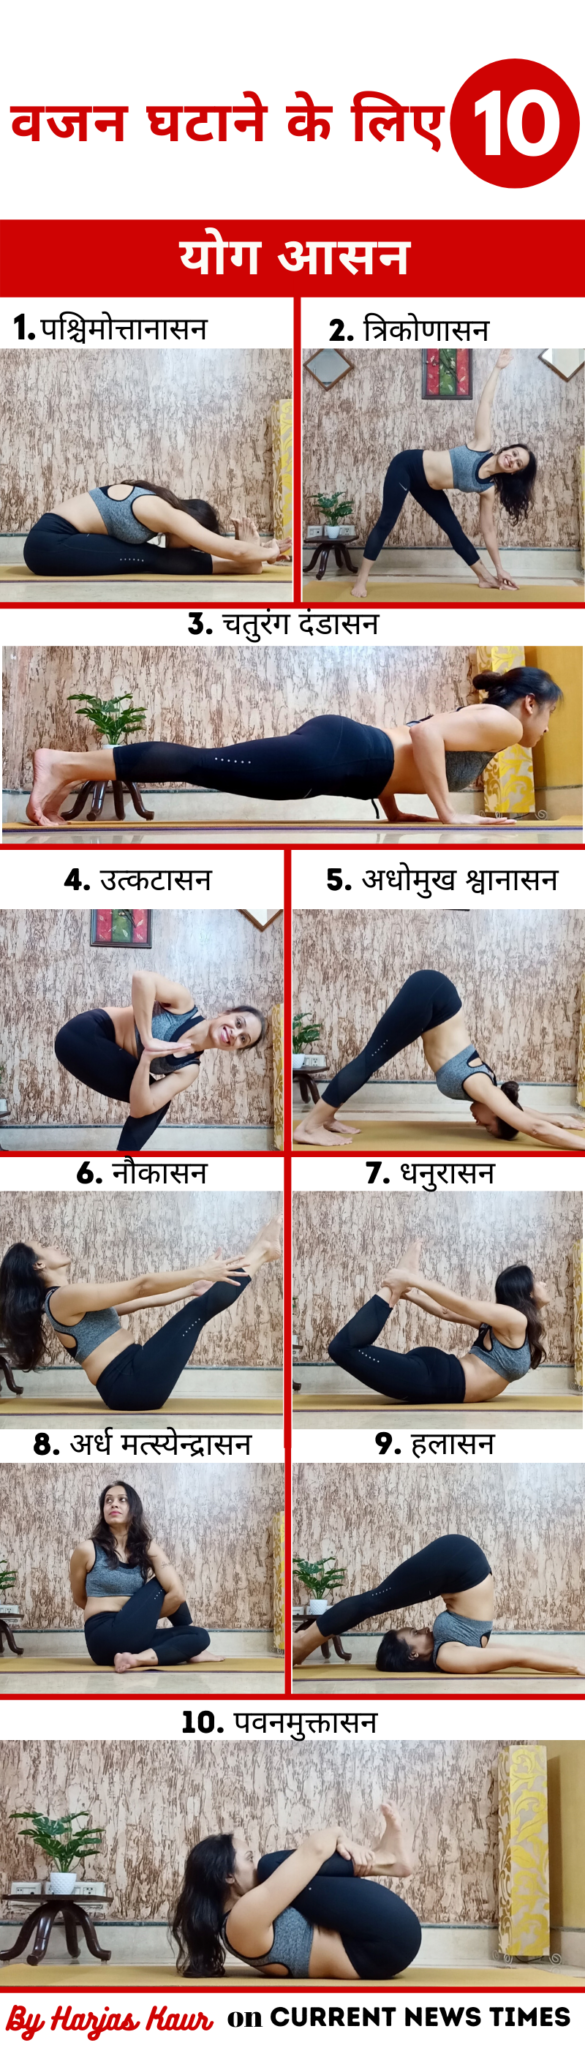 10-Top-Yoga-Poses-for-Weight-Loss-in-hindi